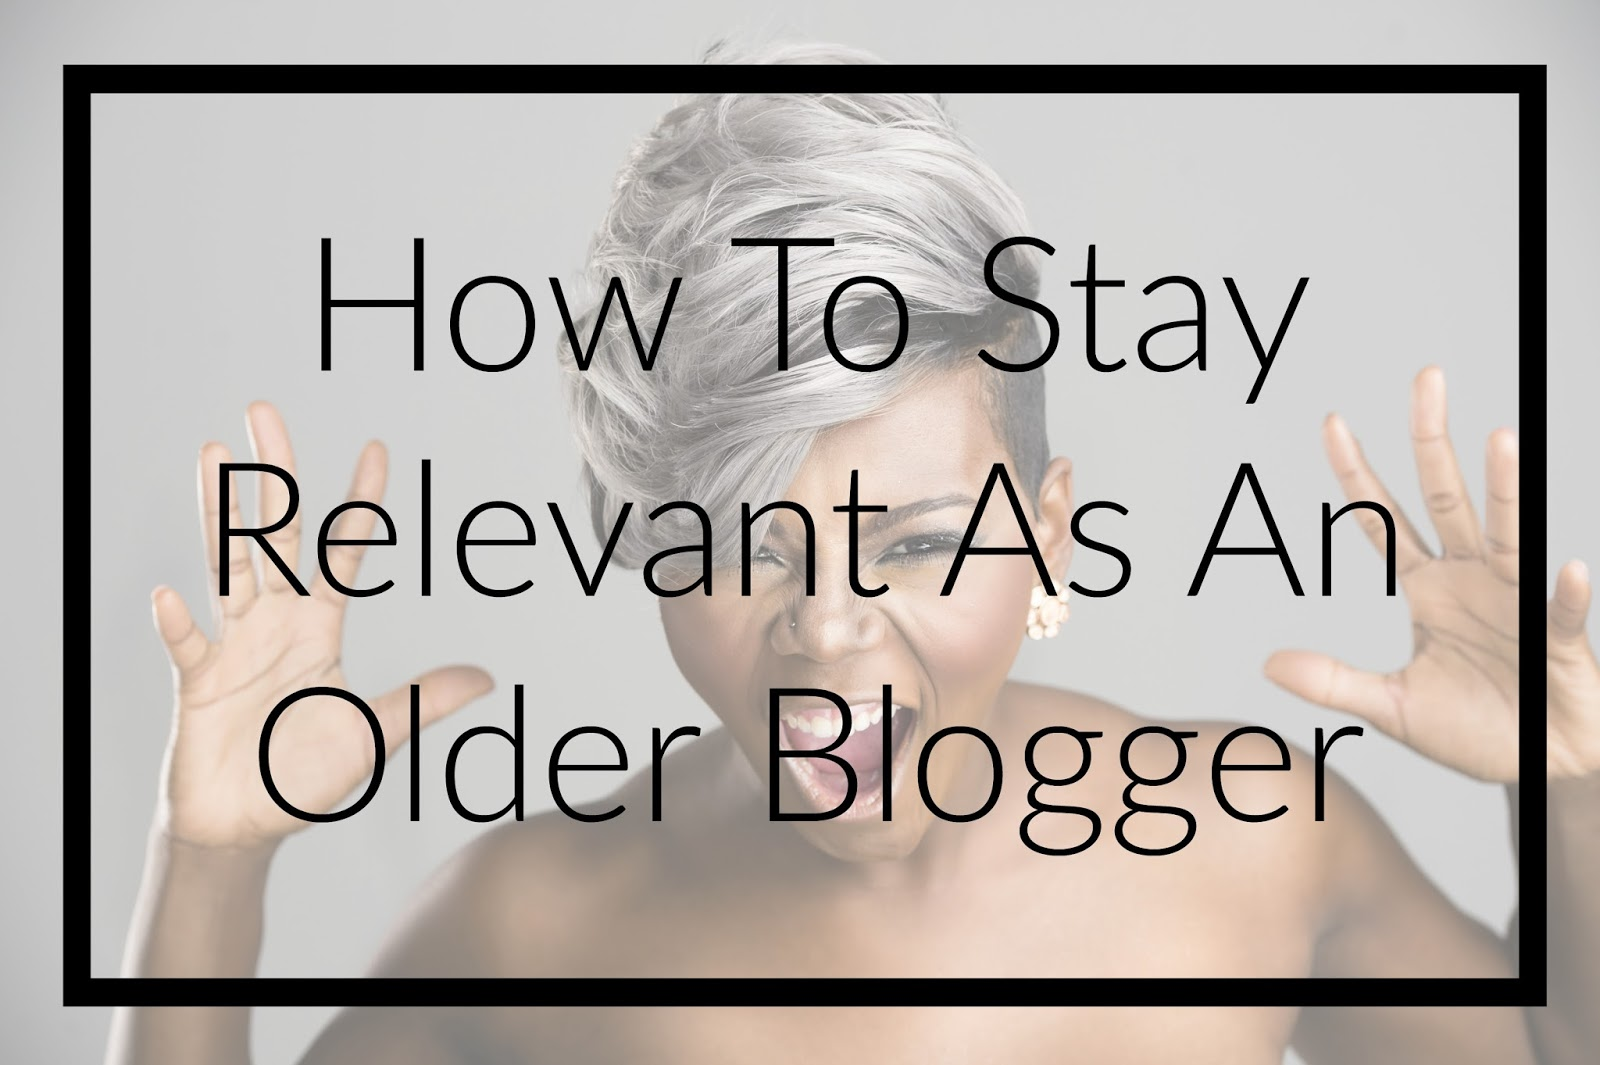 How To Stay Relevant As An Older Blogger & Yes It Can Be Done! Blogging is not dying and it's most certainly not just for the millennial out here! Learn how to make a name for yourself and blog even if older than 35!